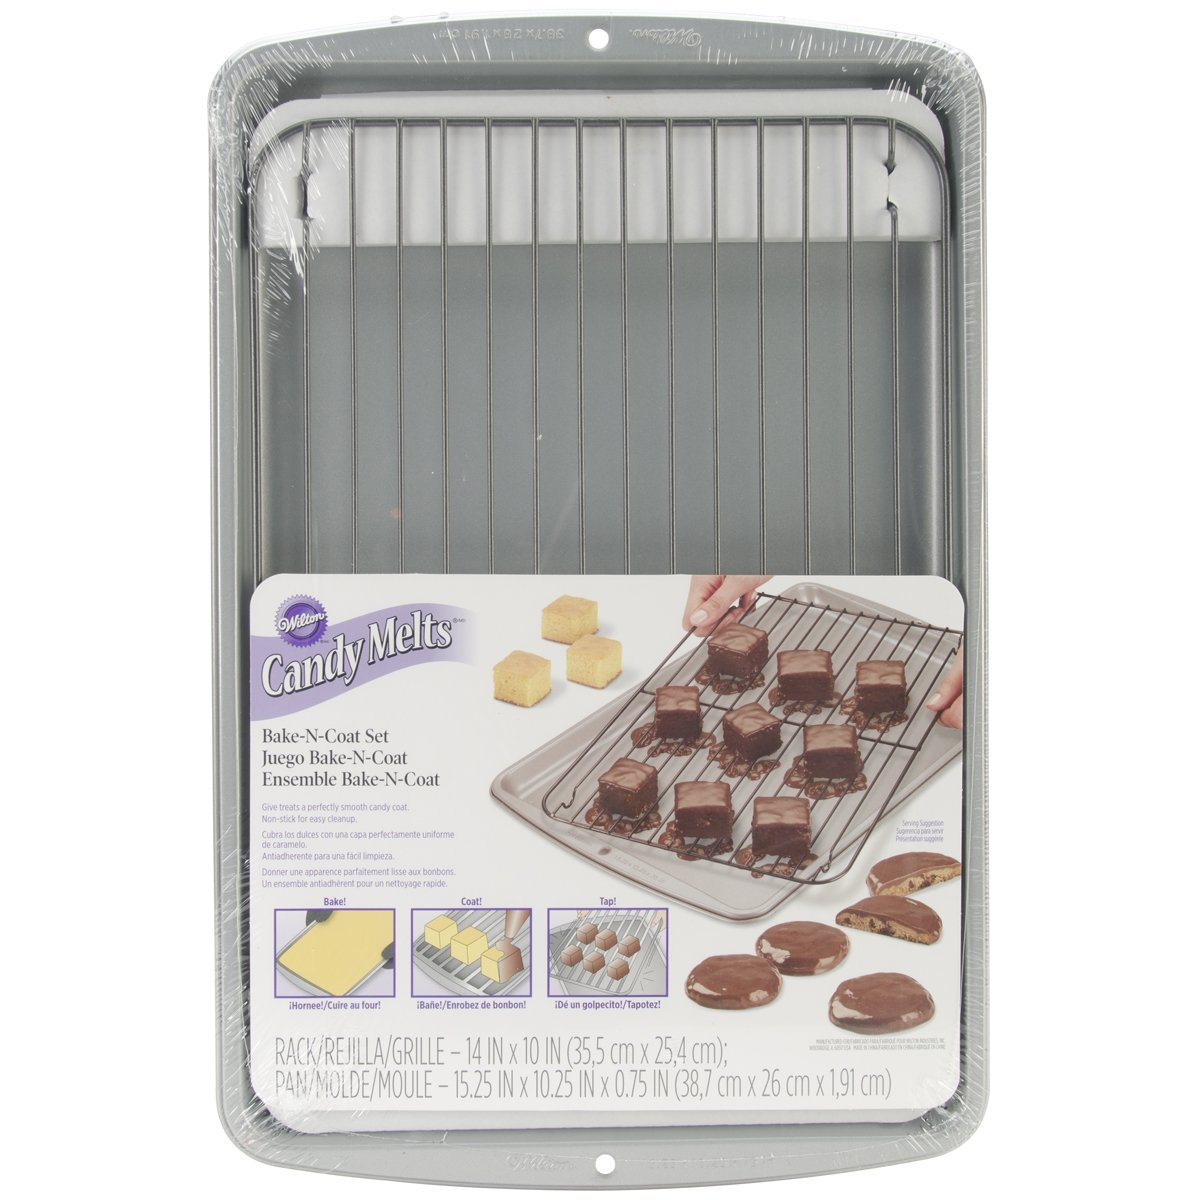 2105-0170 Candy Cooling Grid with Cookie SHeet, Fast shipping,Brand Well Woven by